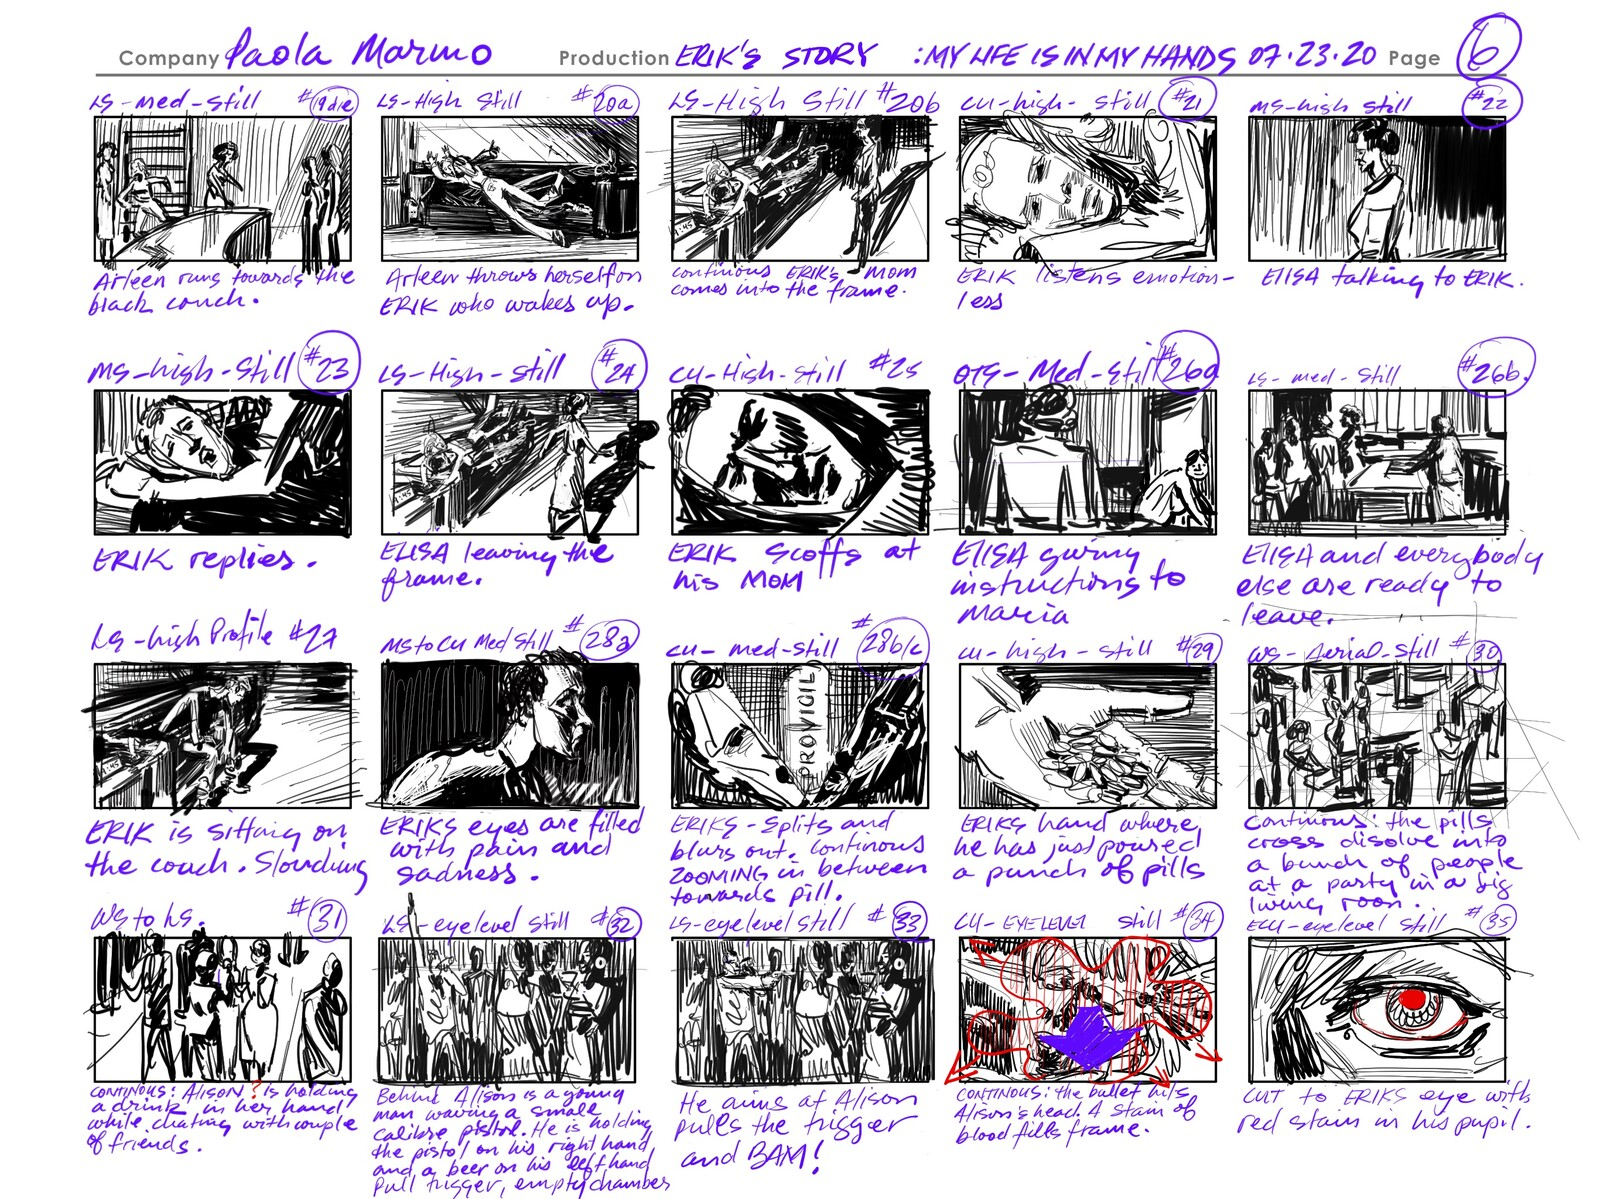 Project 16: Script breakdown into a thumbnail storyboard. Line only.